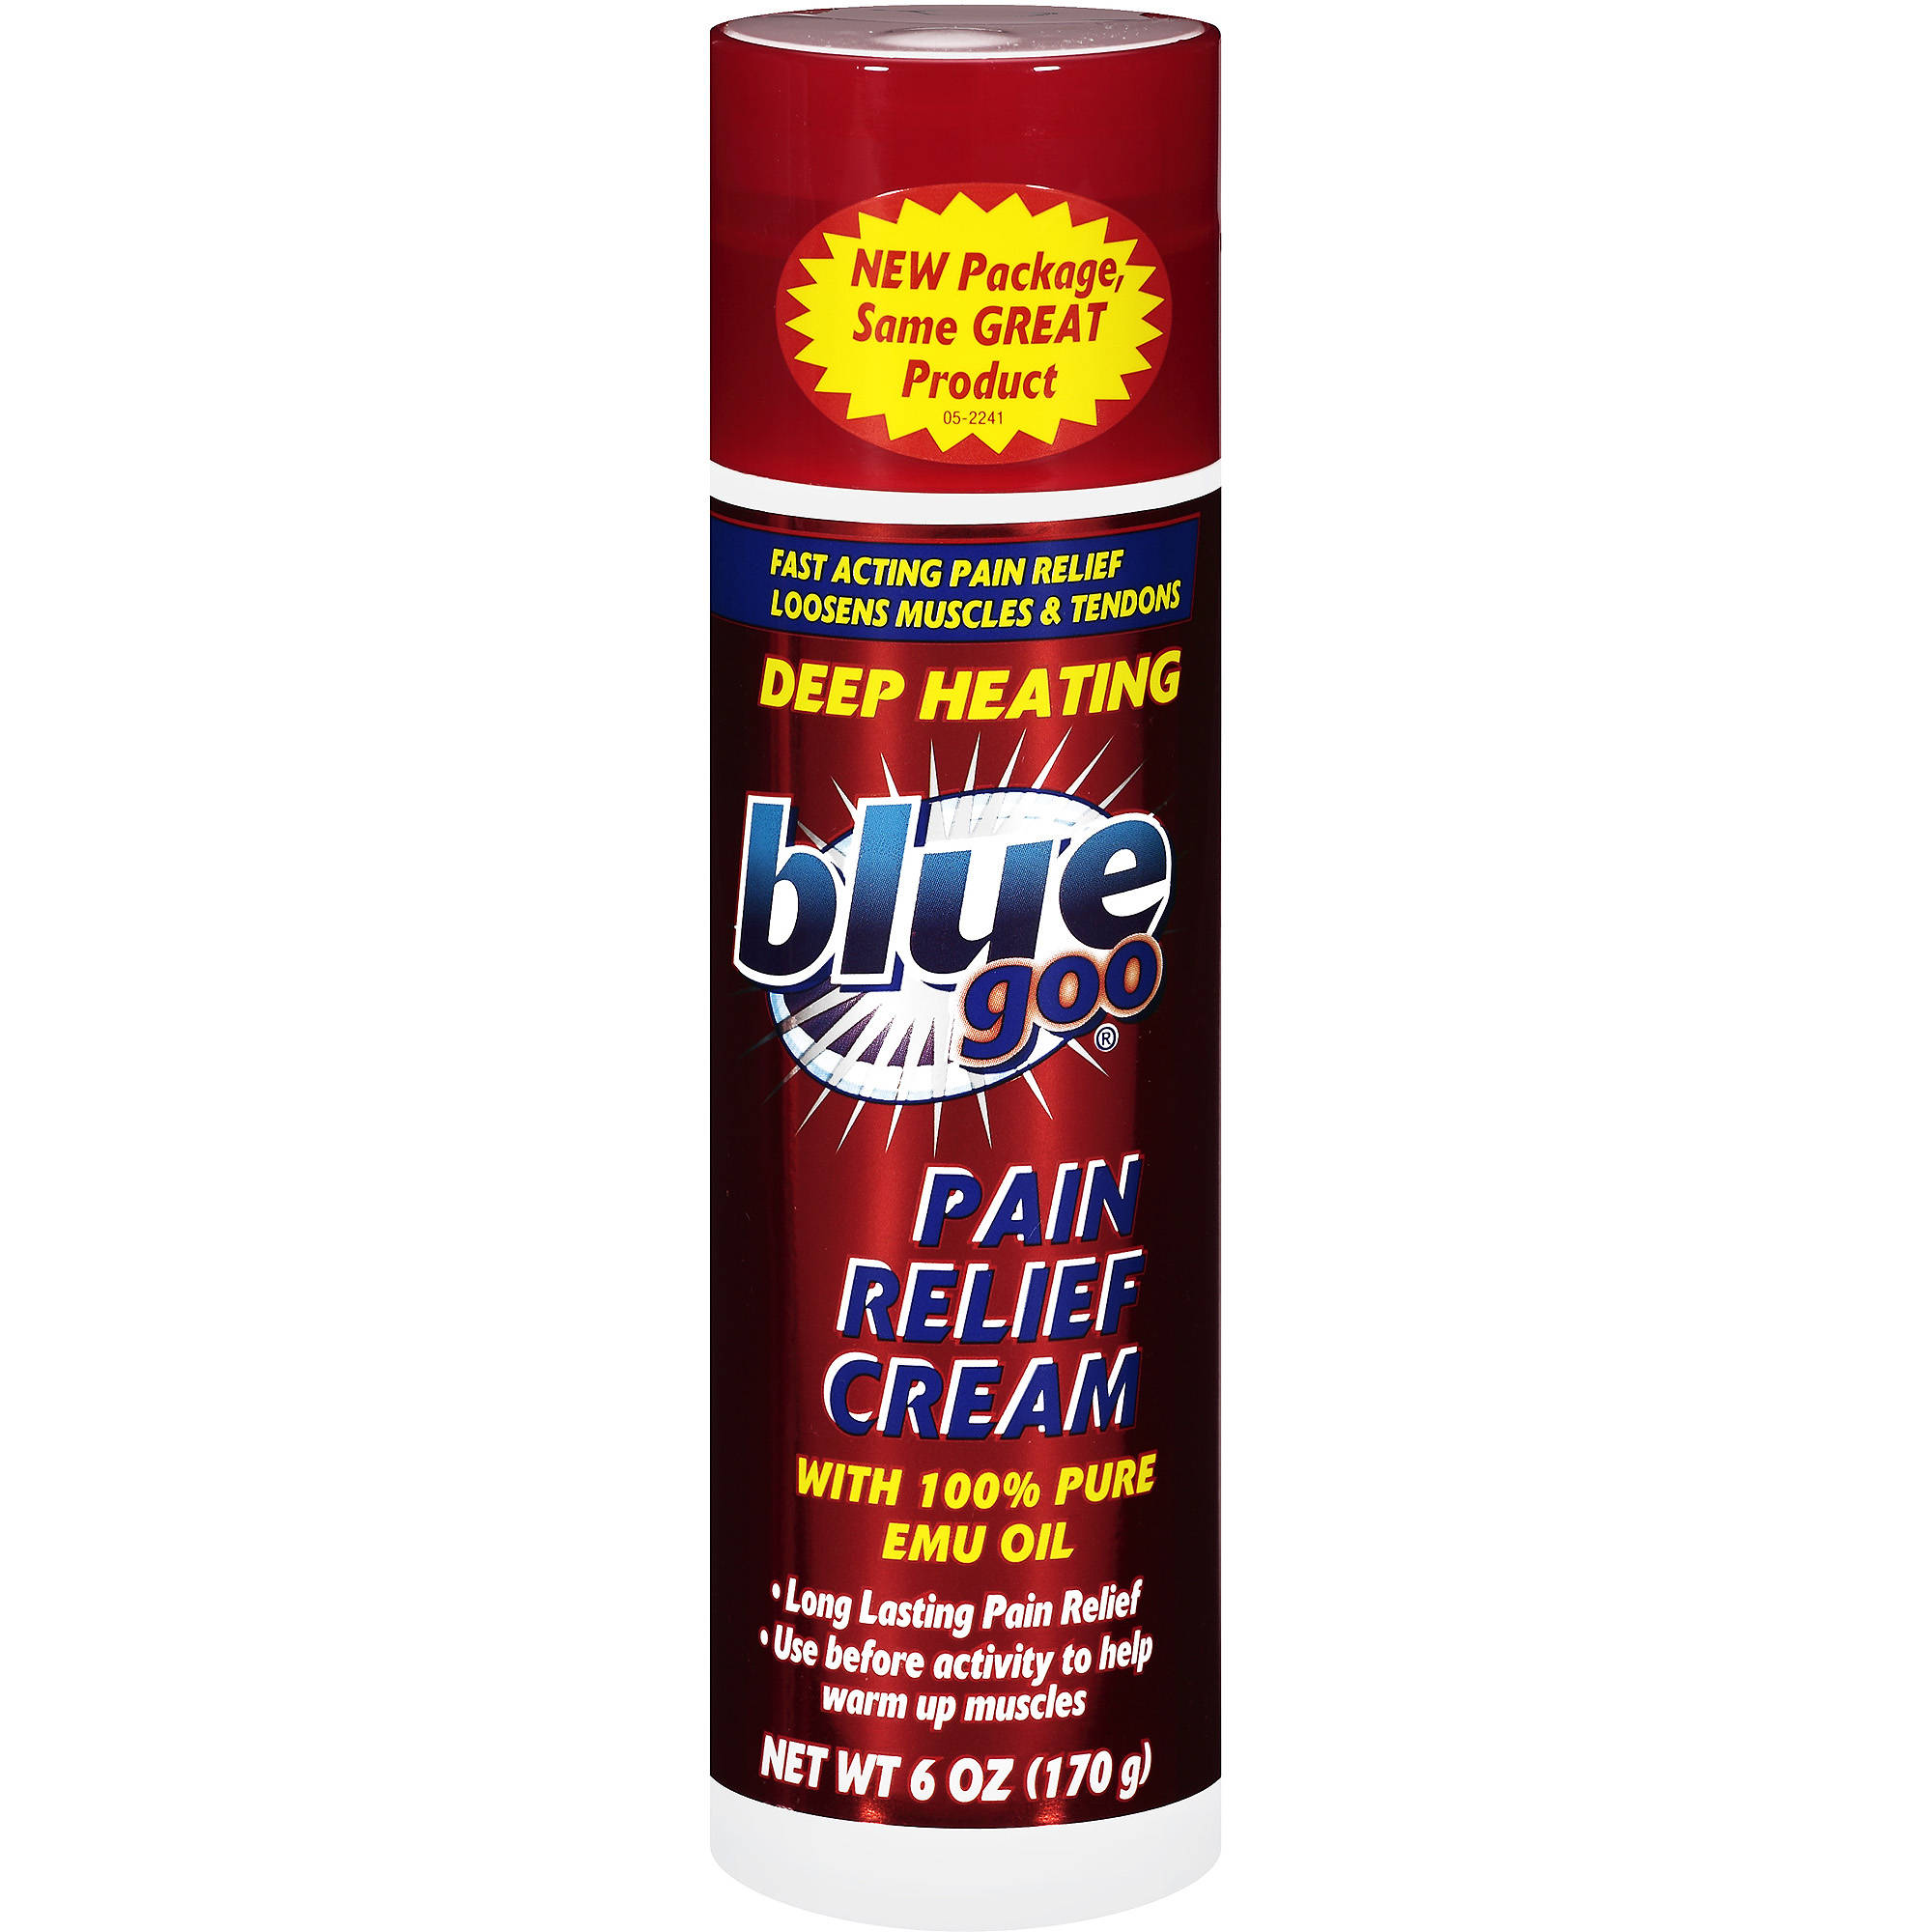 Blue Goo Pain Relief Deep Heating Cream, 6 oz